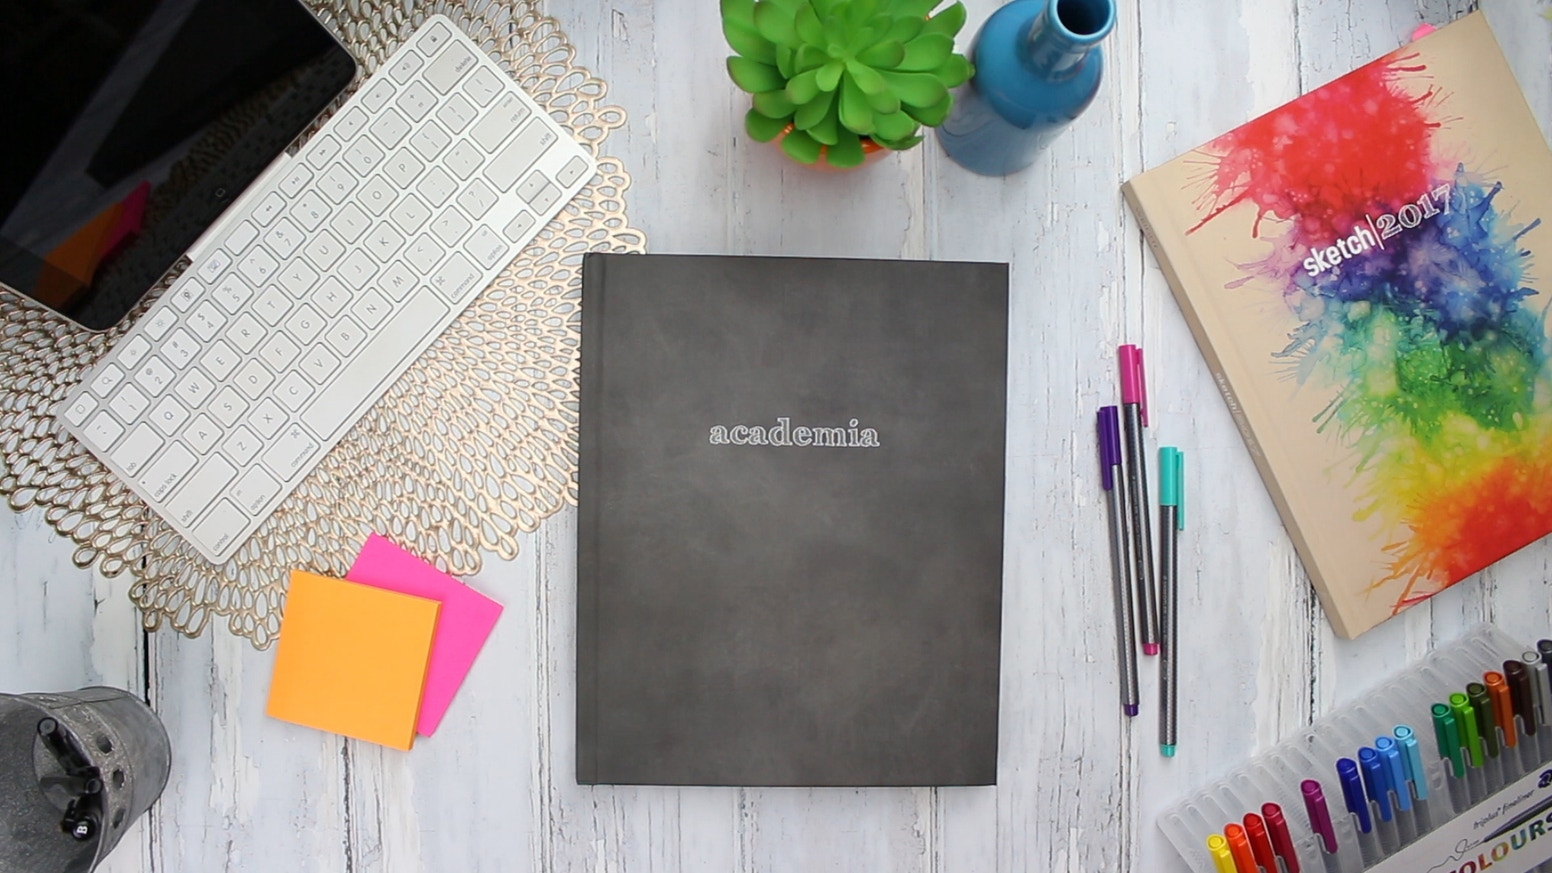 Academia is a customizable hardcover academic planner developed by a phd student for students